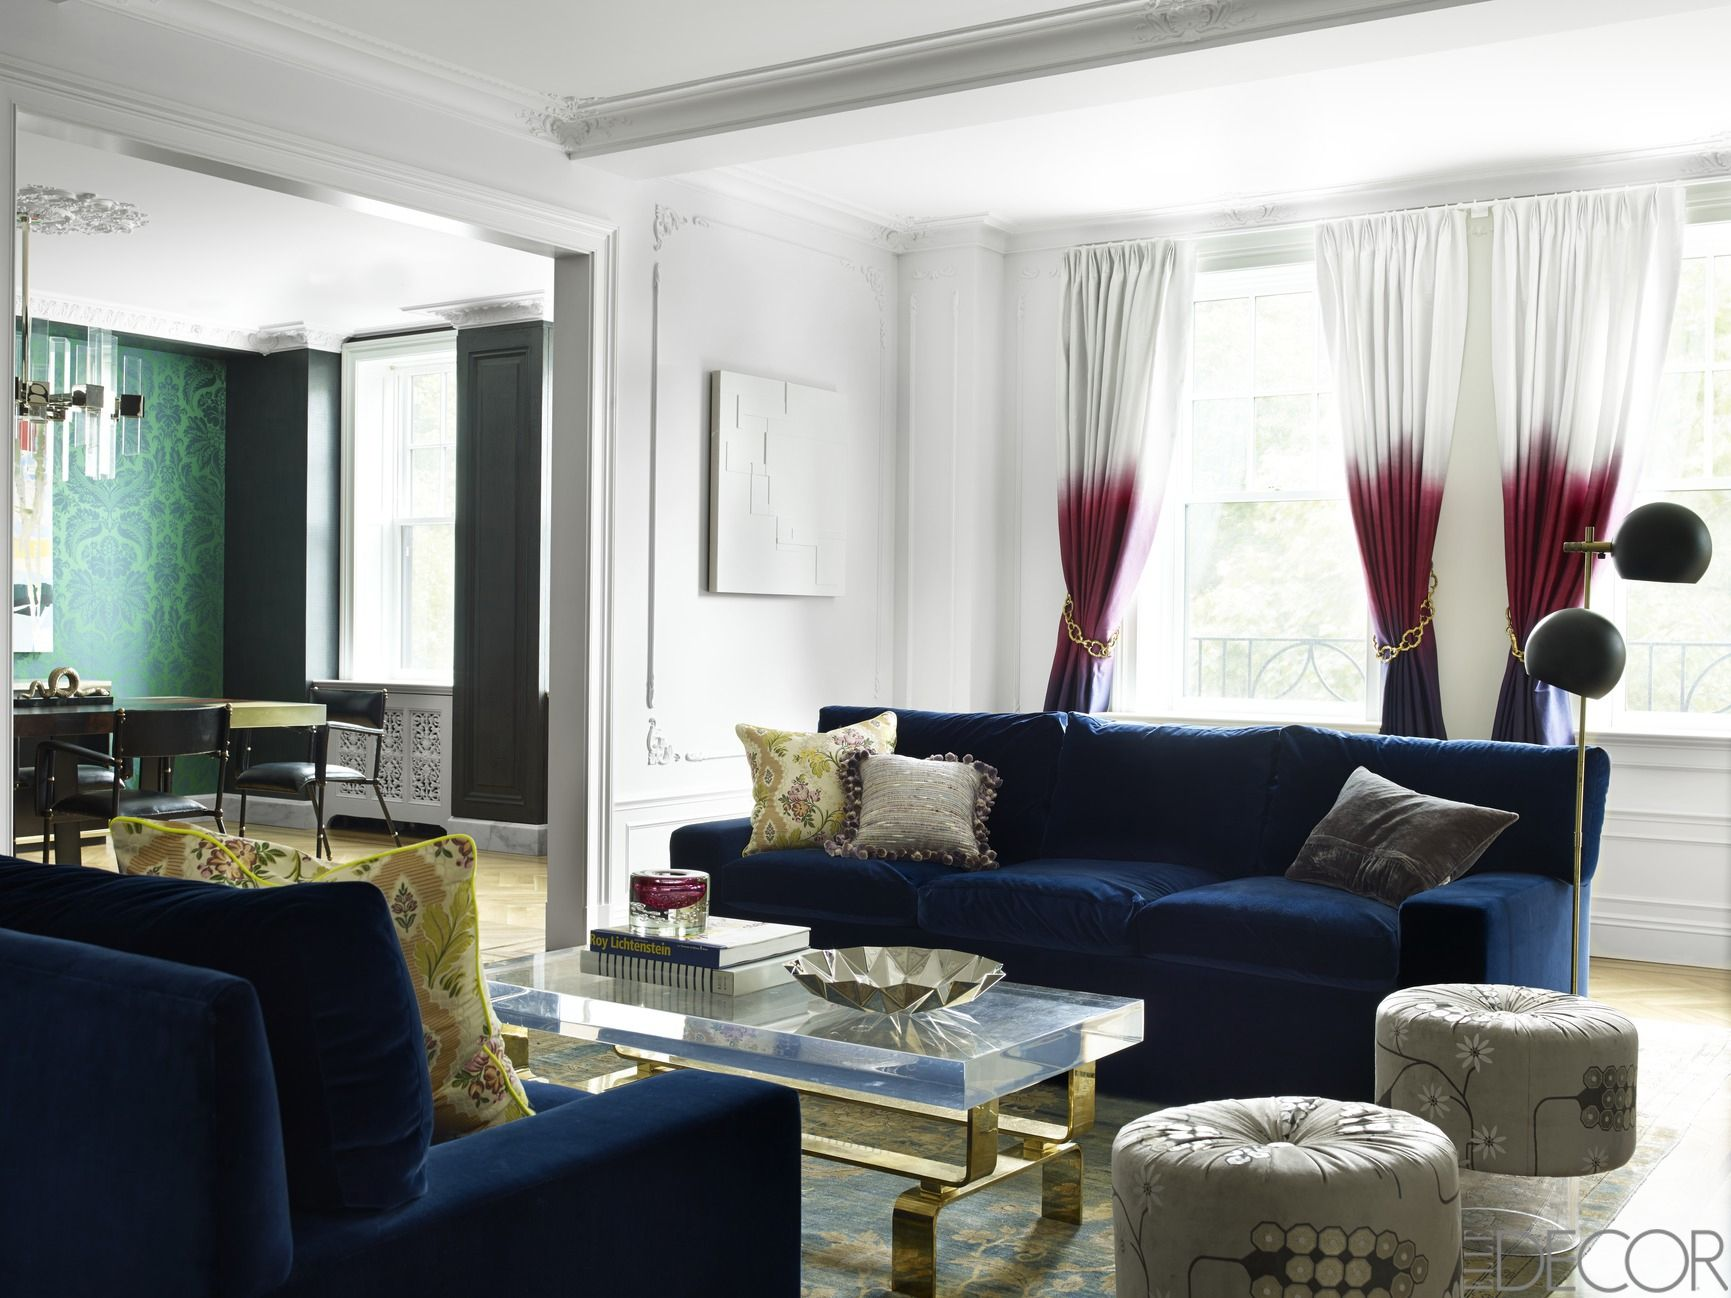 Modern living room curtain styles intrinsiclifedesign